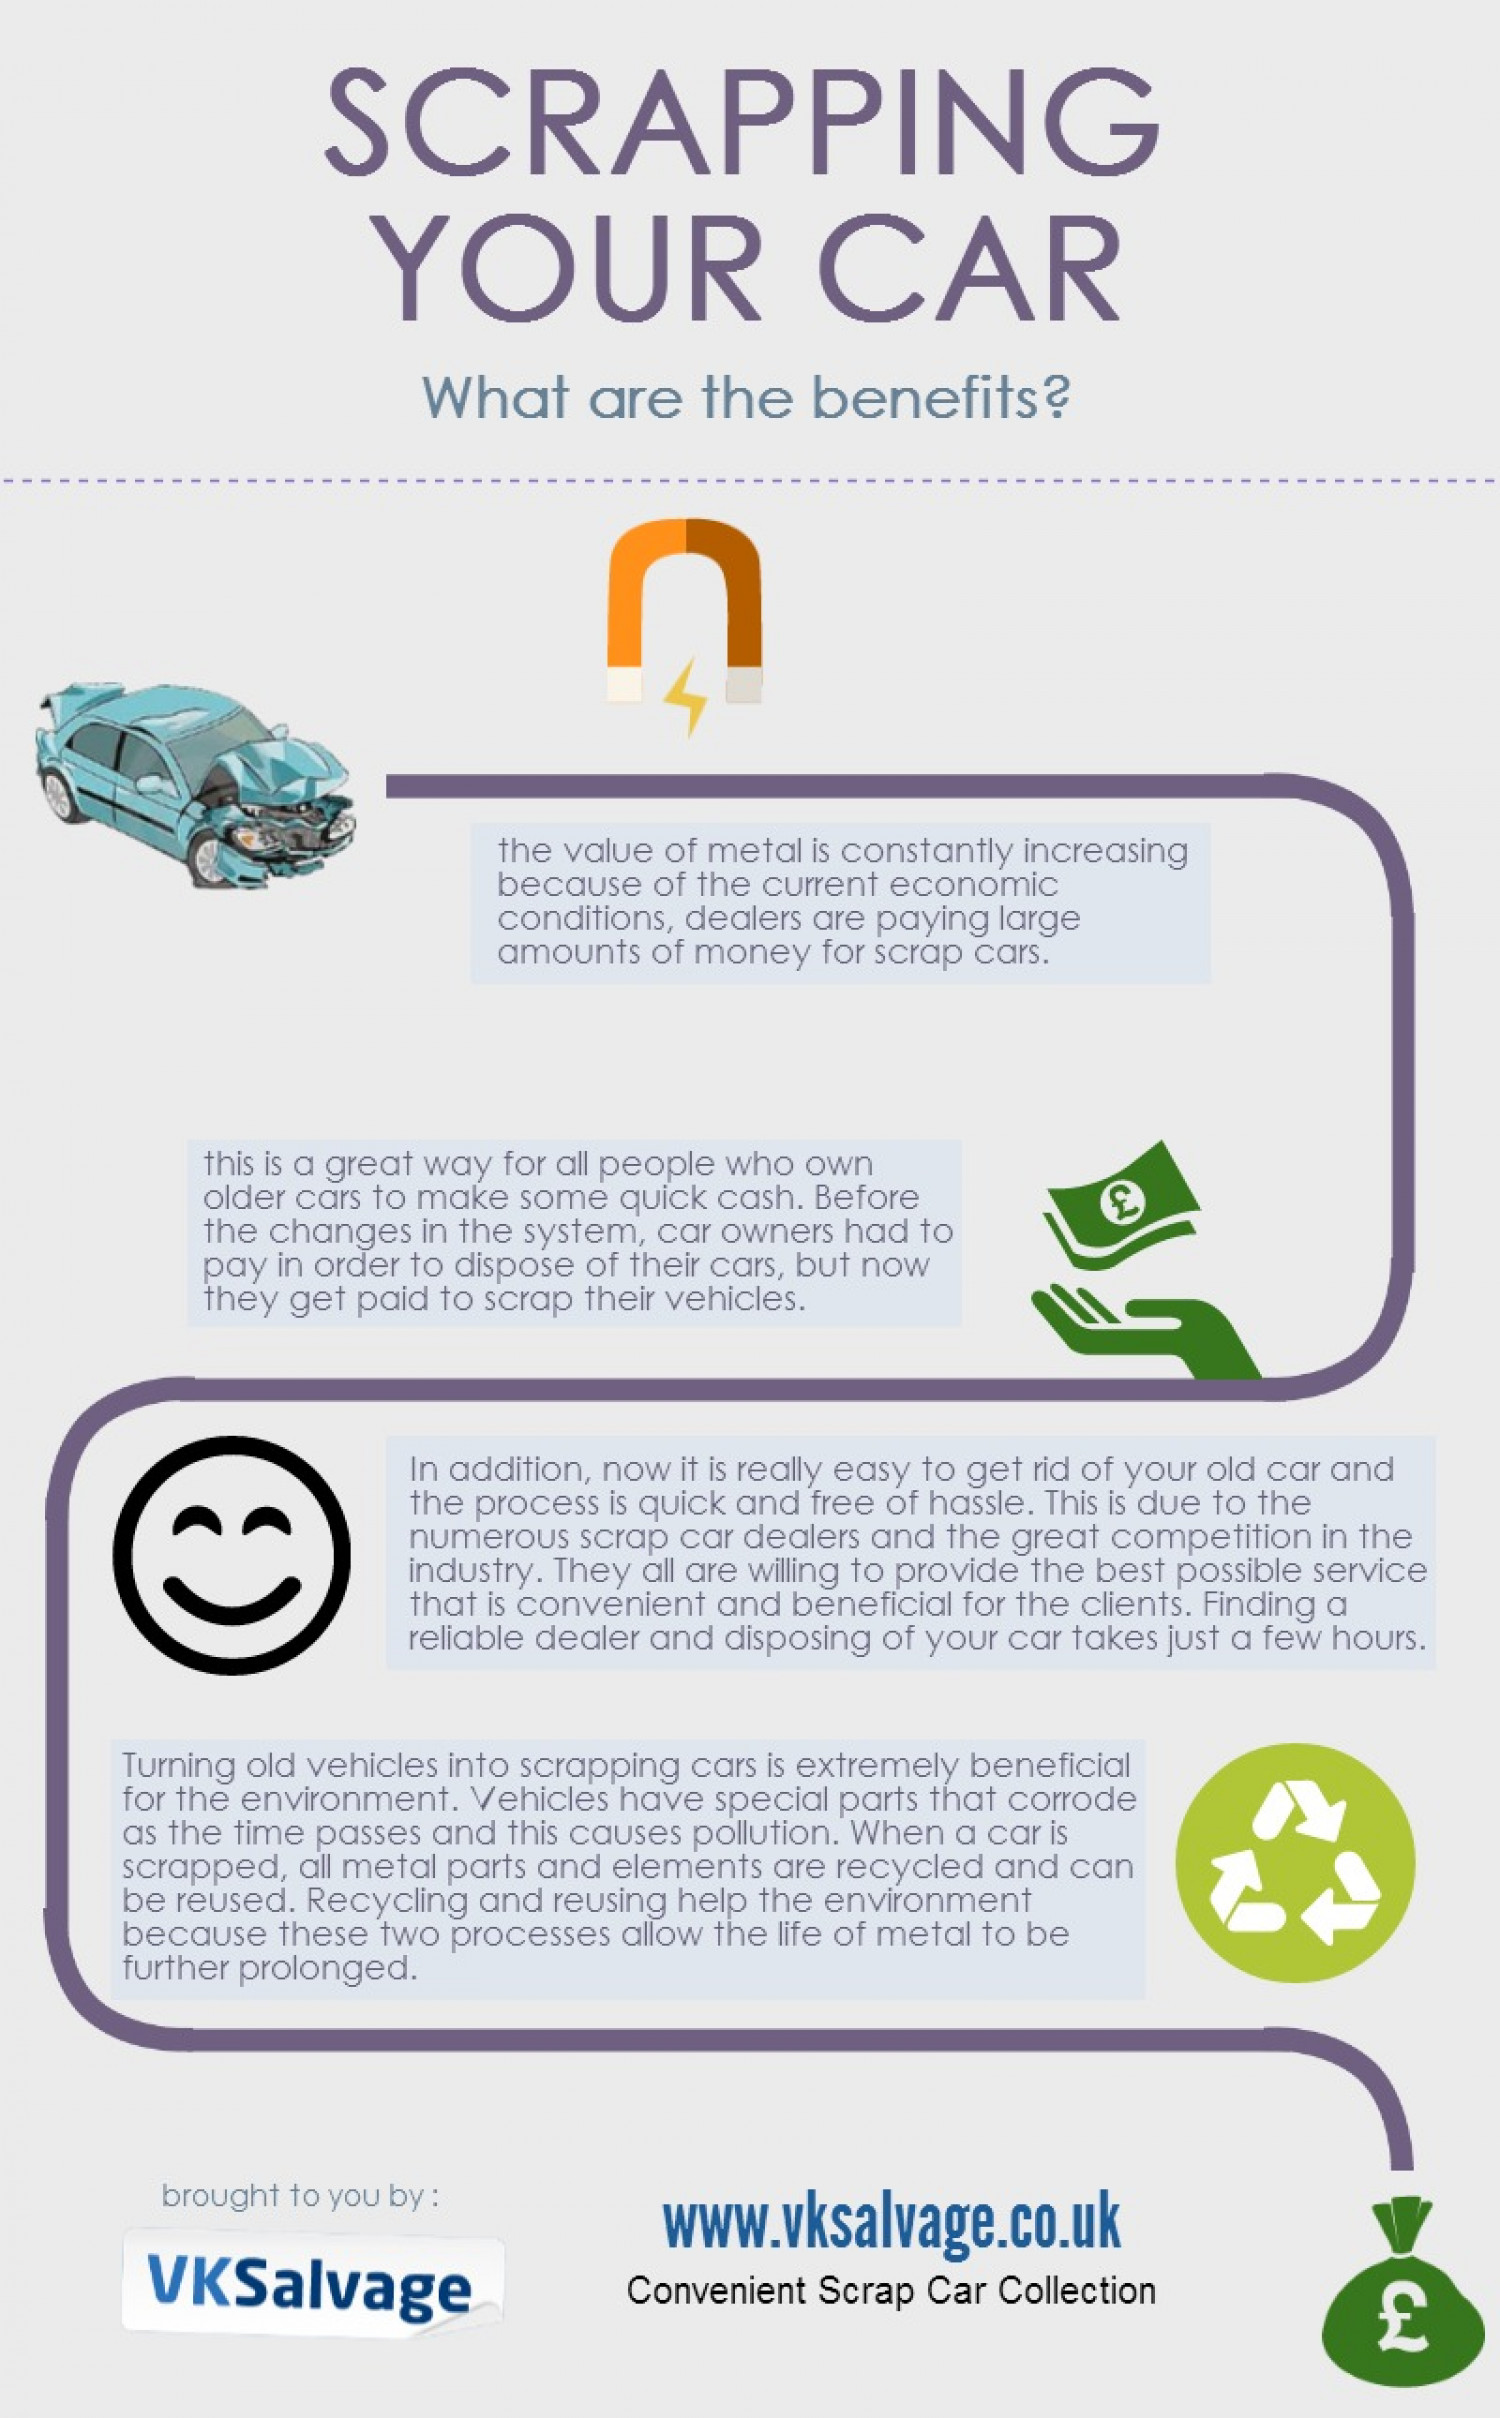 The Benefits of Scrapping your Car | Visual.ly